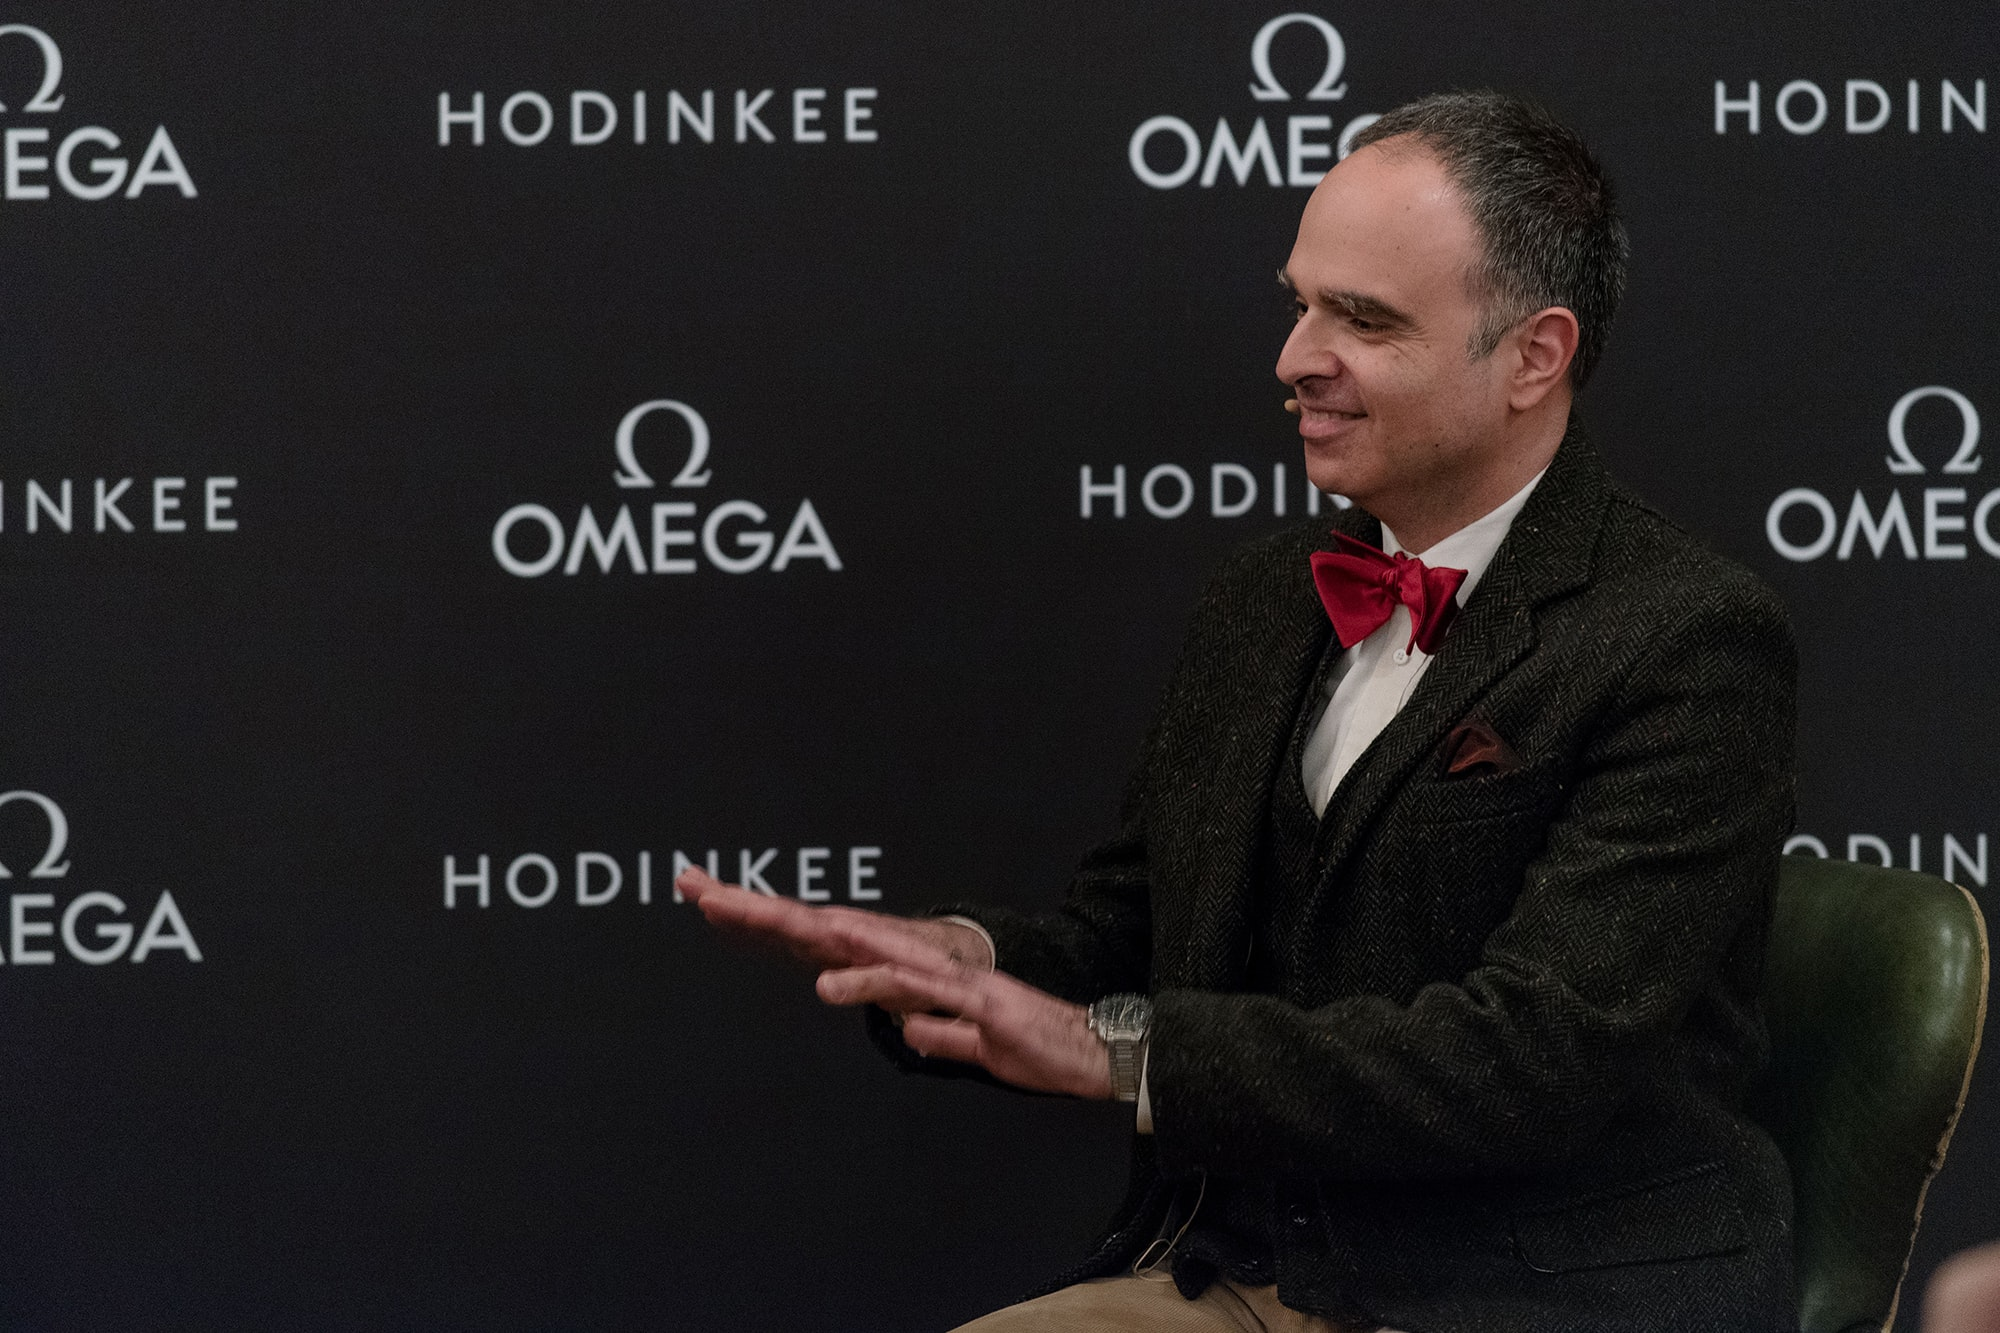 Photo Report: HODINKEE And Omega Celebrate The 60th Anniversary Of The Speedmaster Photo Report: HODINKEE And Omega Celebrate The 60th Anniversary Of The Speedmaster 20170221 OmegaSpeedmaster60th 061